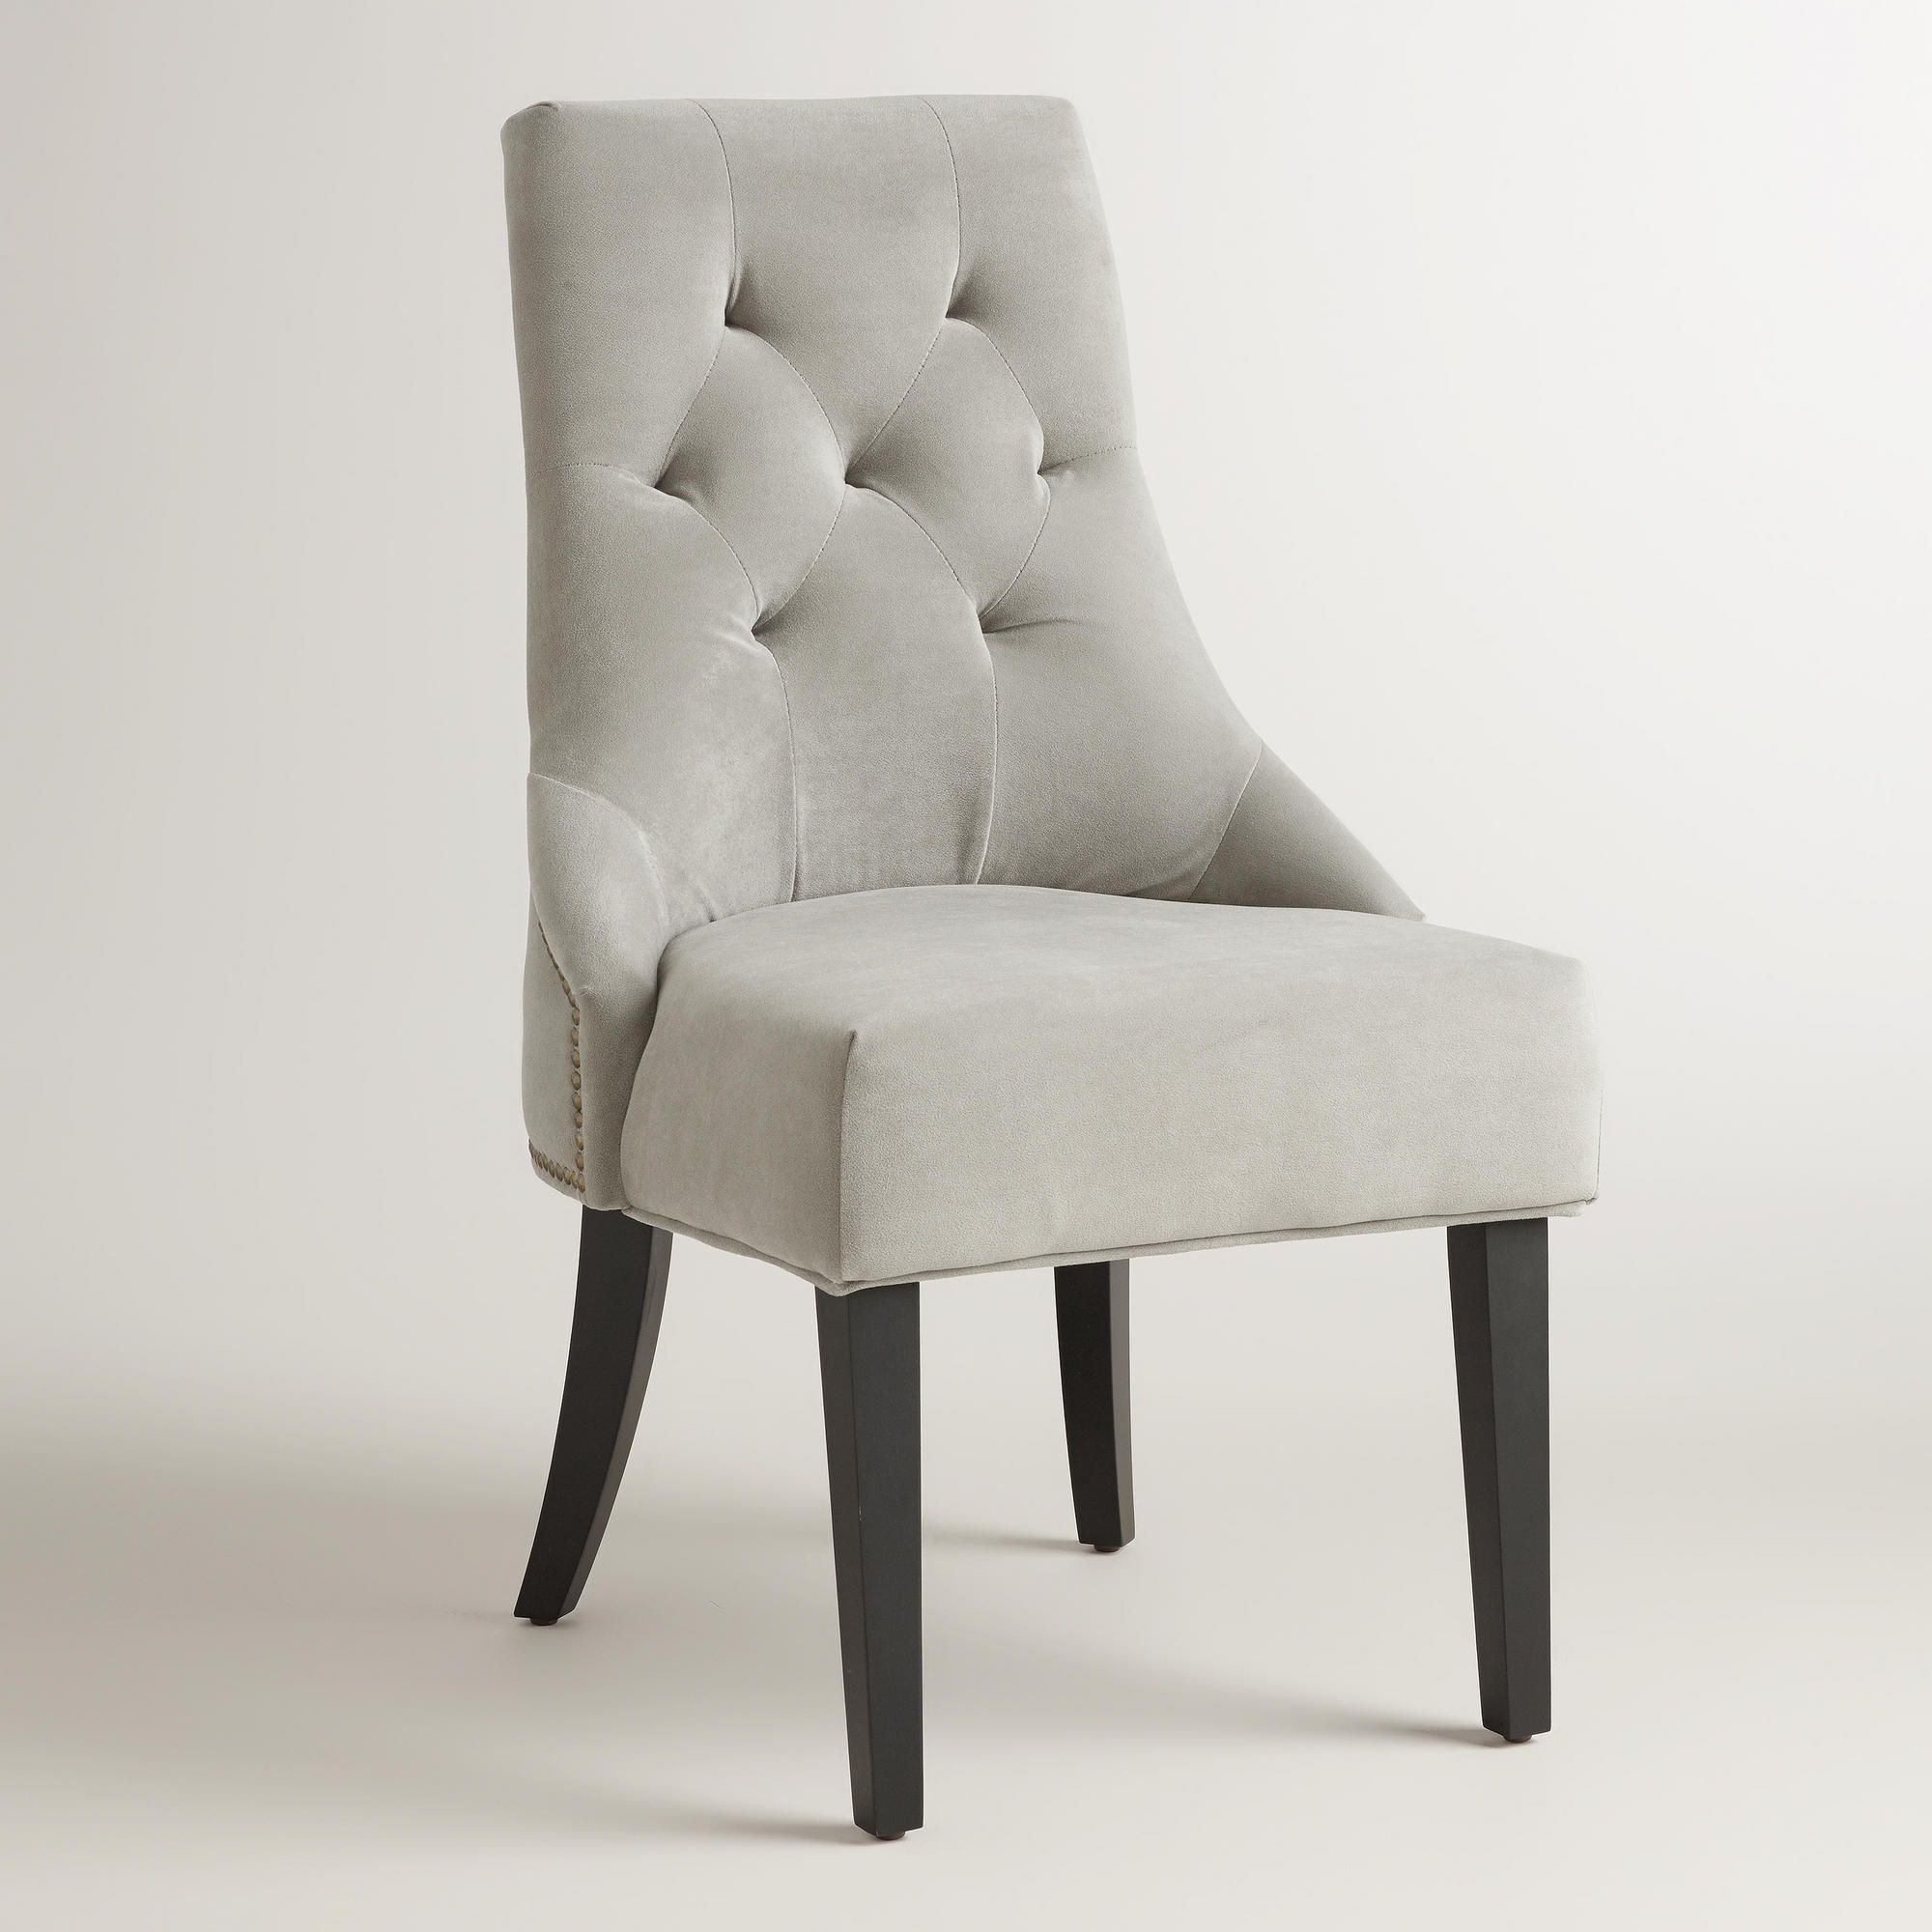 Dove Gray Tufted Lydia Dining Chairs Set Of 2